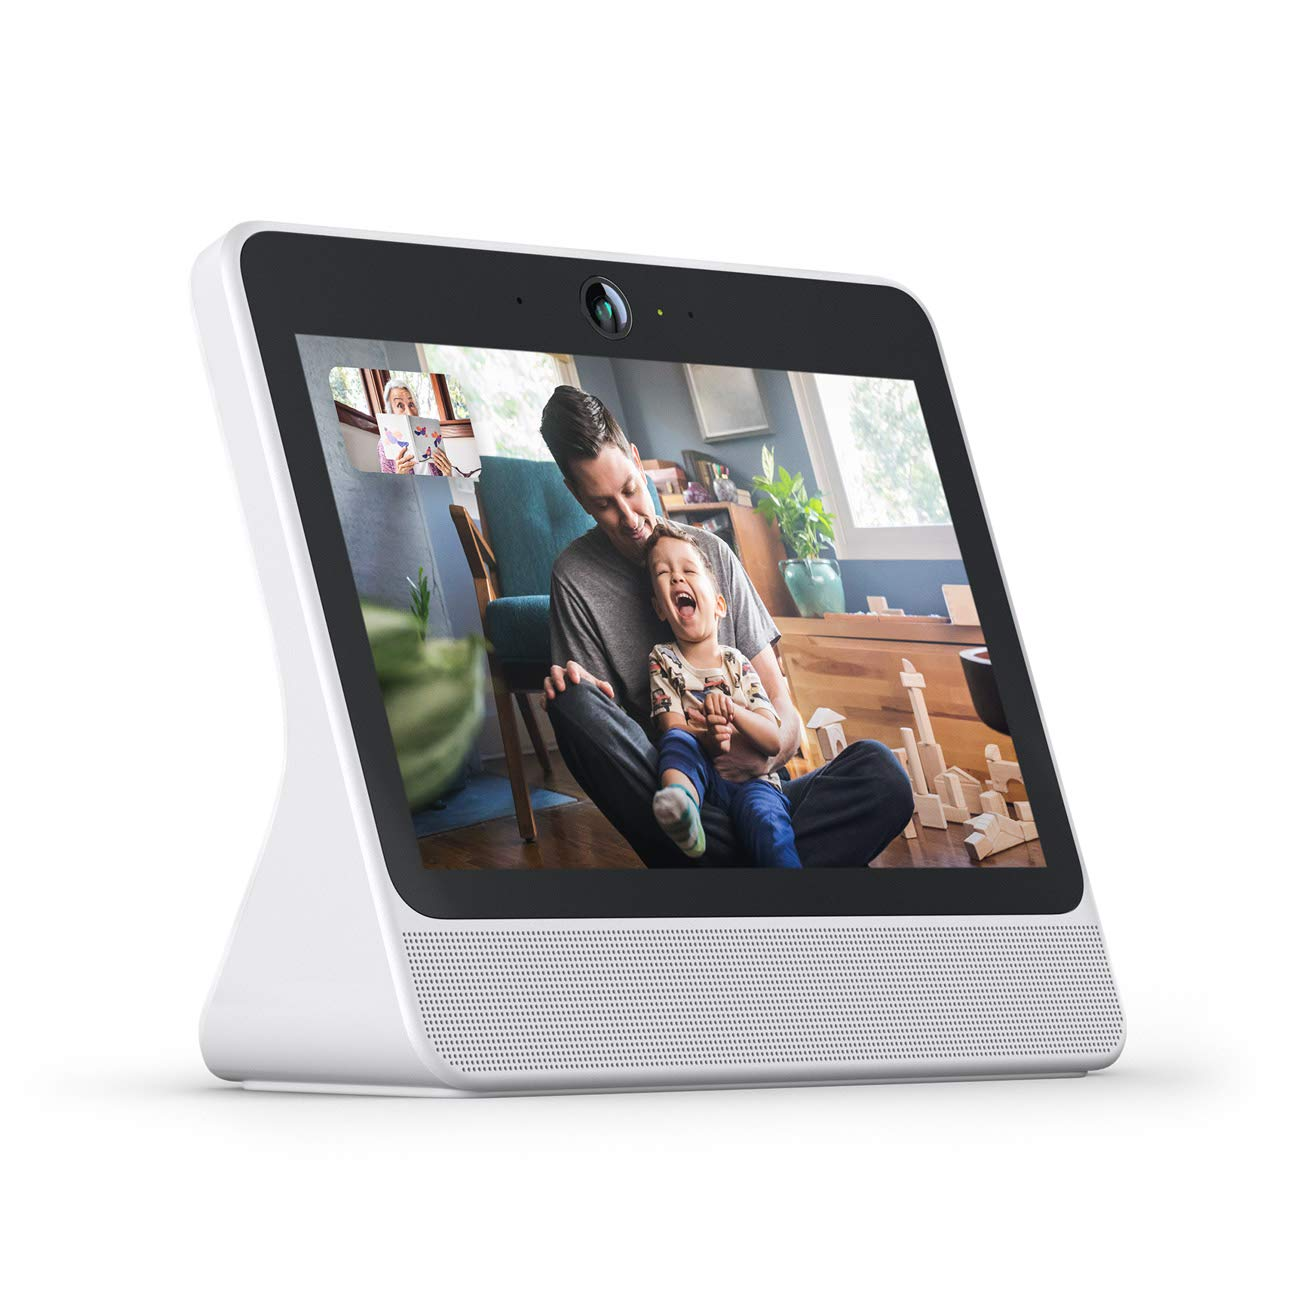 "Portal from Facebook. Smart, Hands-Free Video Calling with Alexa Built-in [10.1"" display] – White"